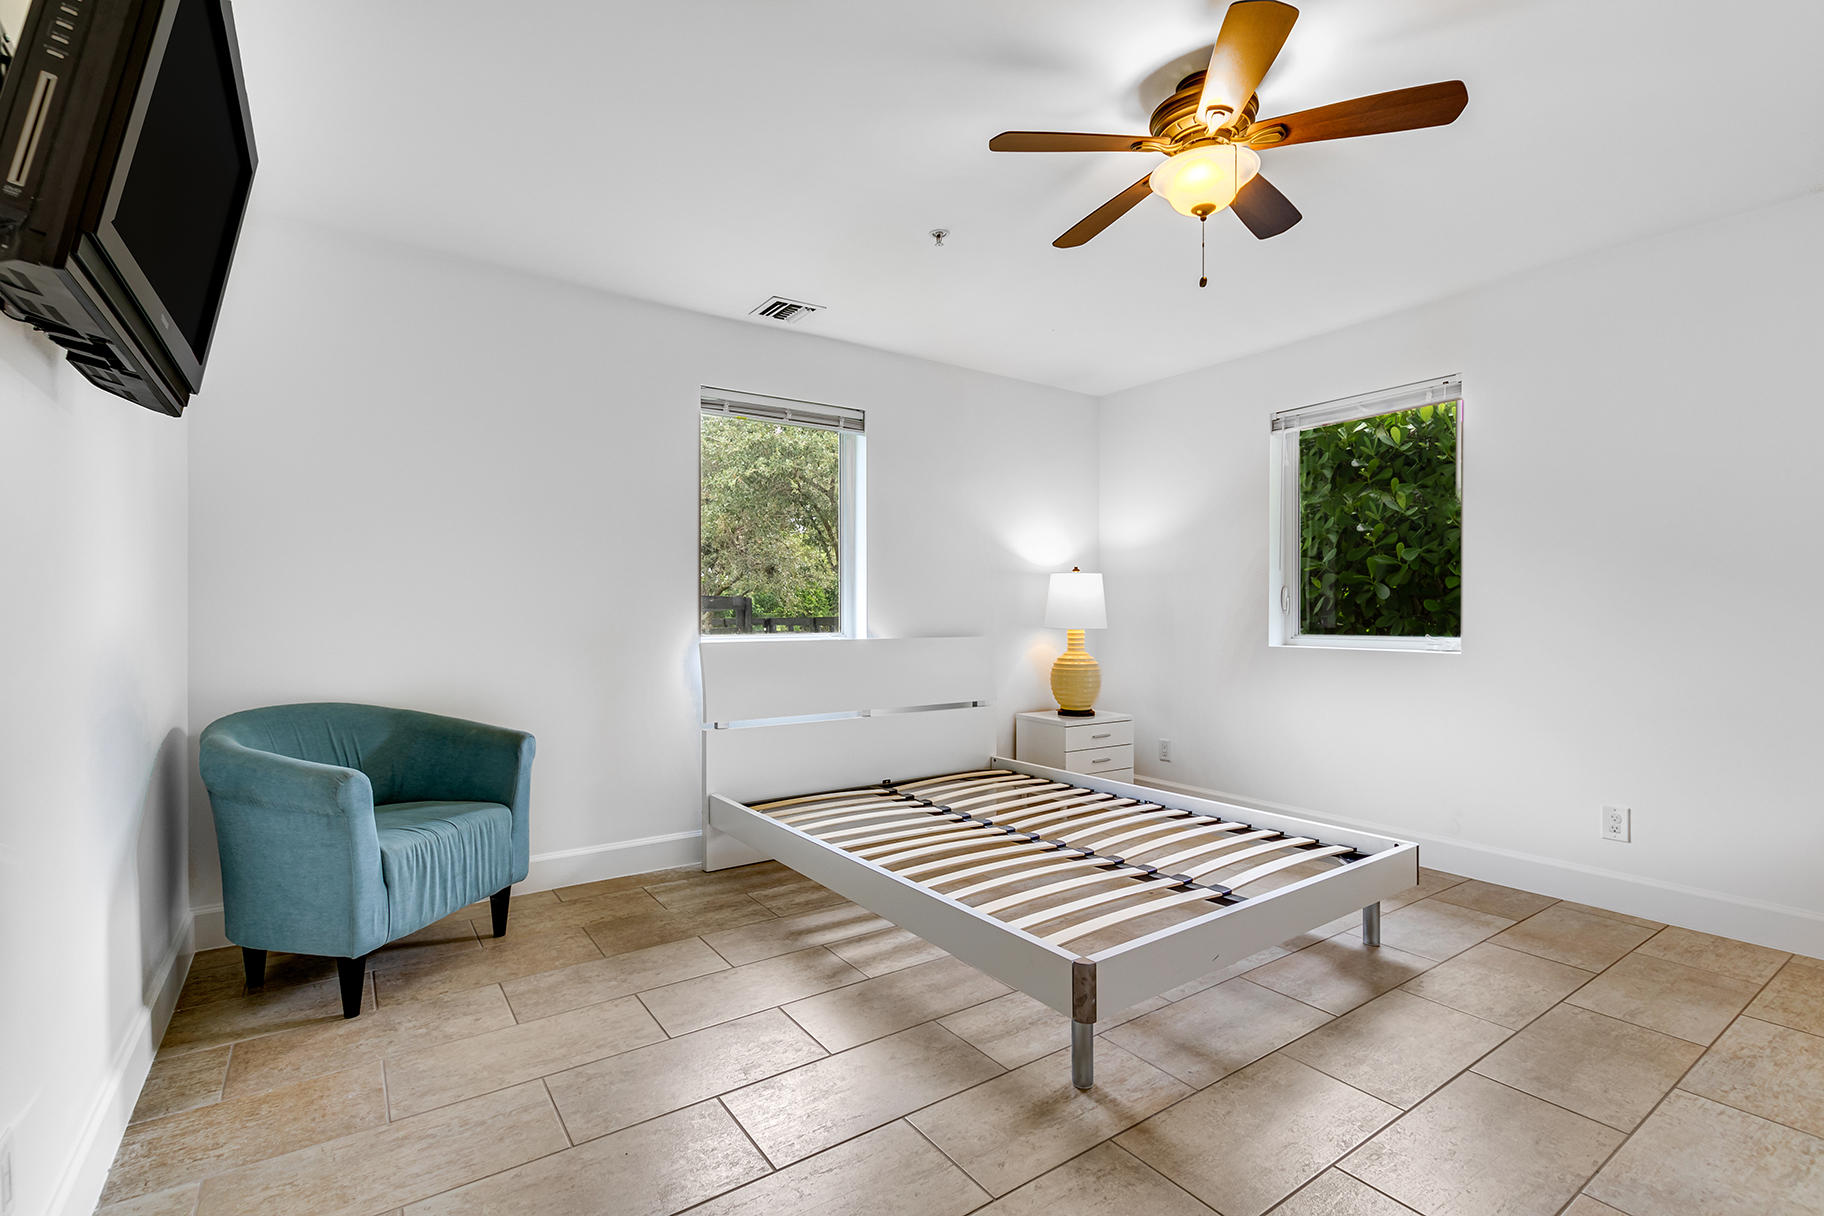 Wellington, Florida 33414, 2 Bedrooms Bedrooms, ,2 BathroomsBathrooms,Residential,For Sale,Shutterfly,RX-10604364